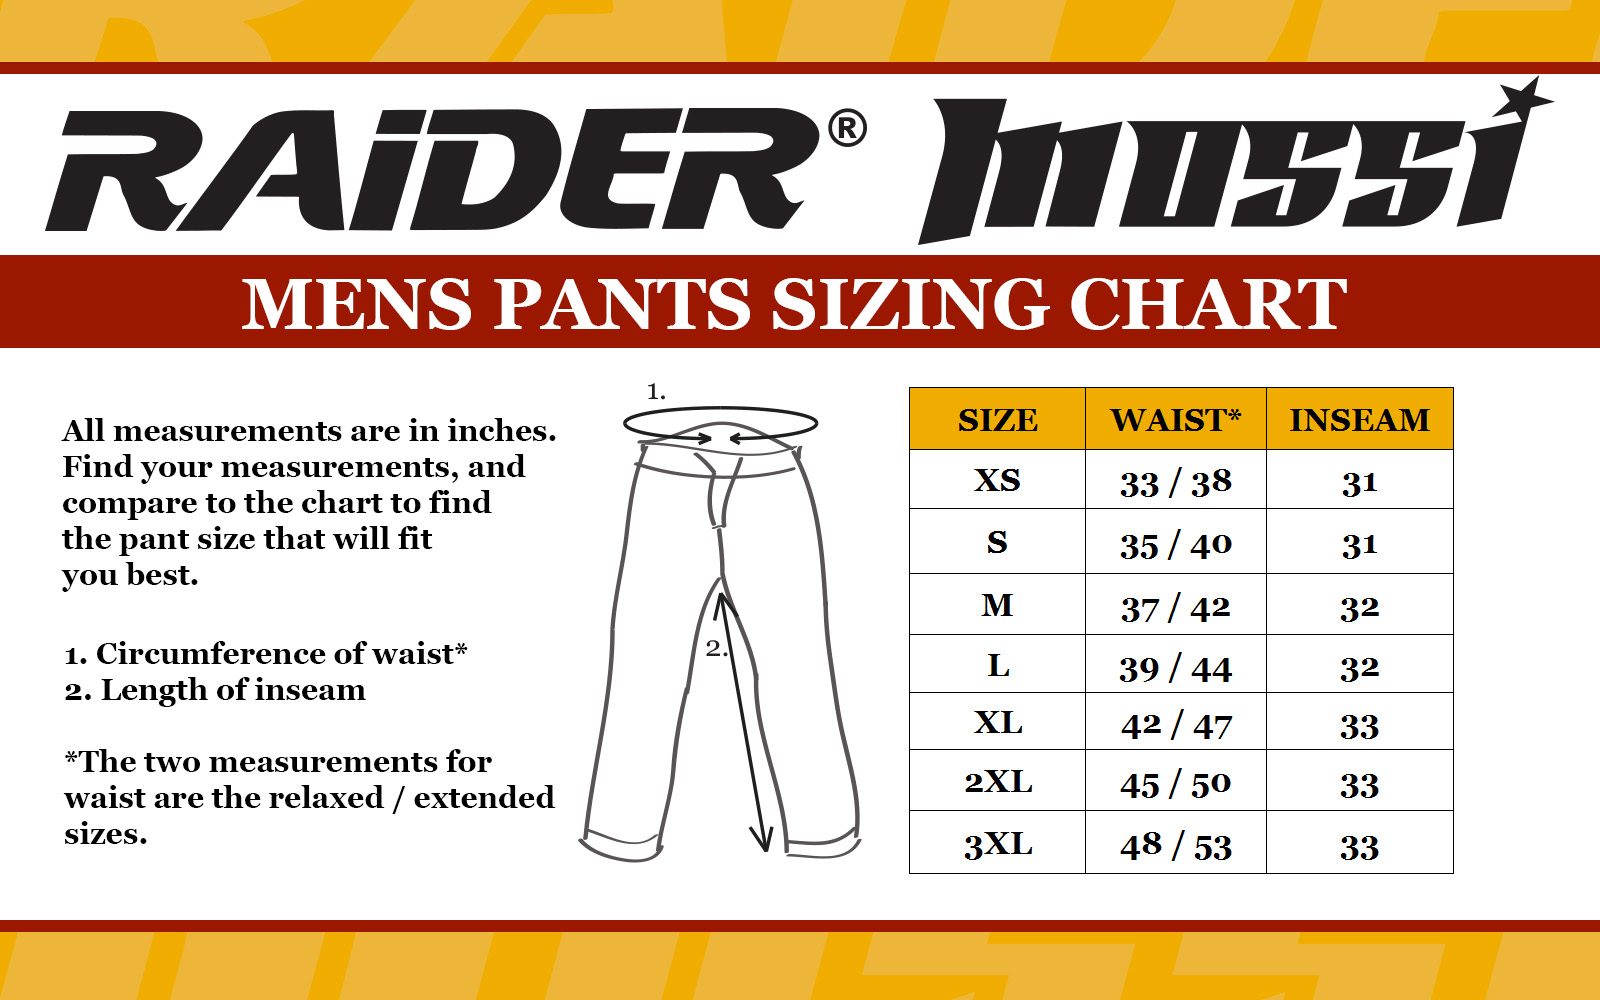 xxl size chart men really size number: Xxl size chart men really size number mens t shirt size chart